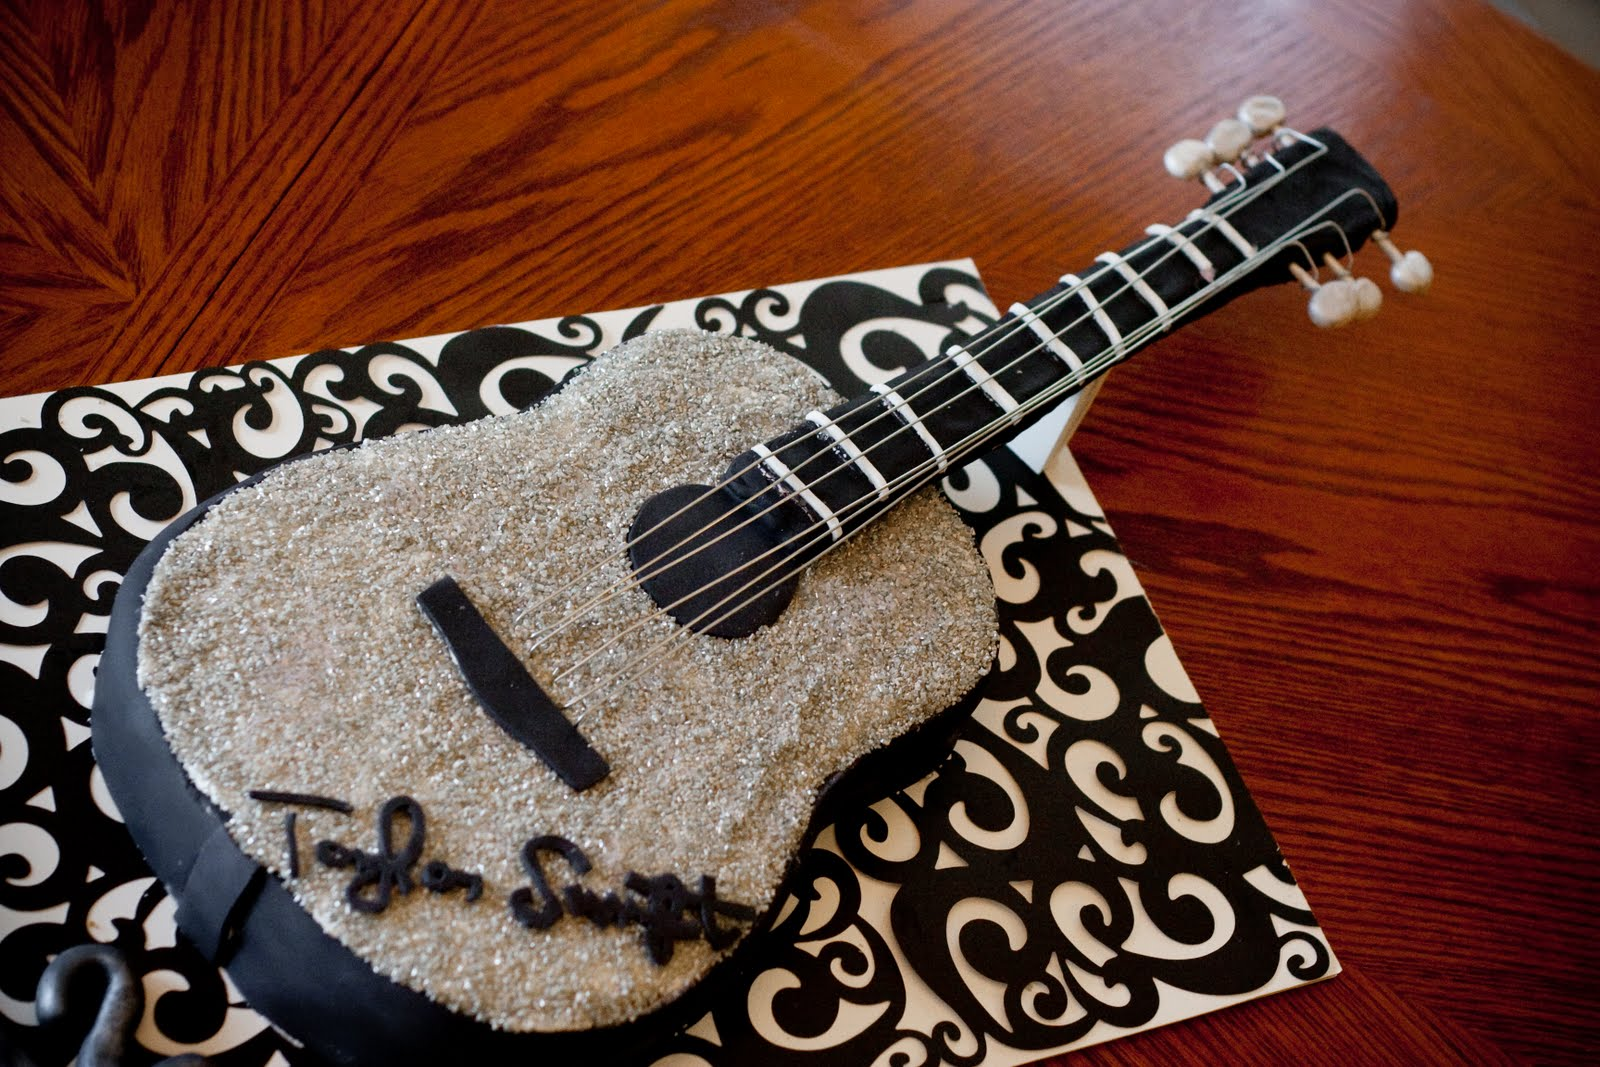 Guitar Birthday Cake Images : Taylor Swift Acoustic Guitar Birthday Cake Jessica Peck